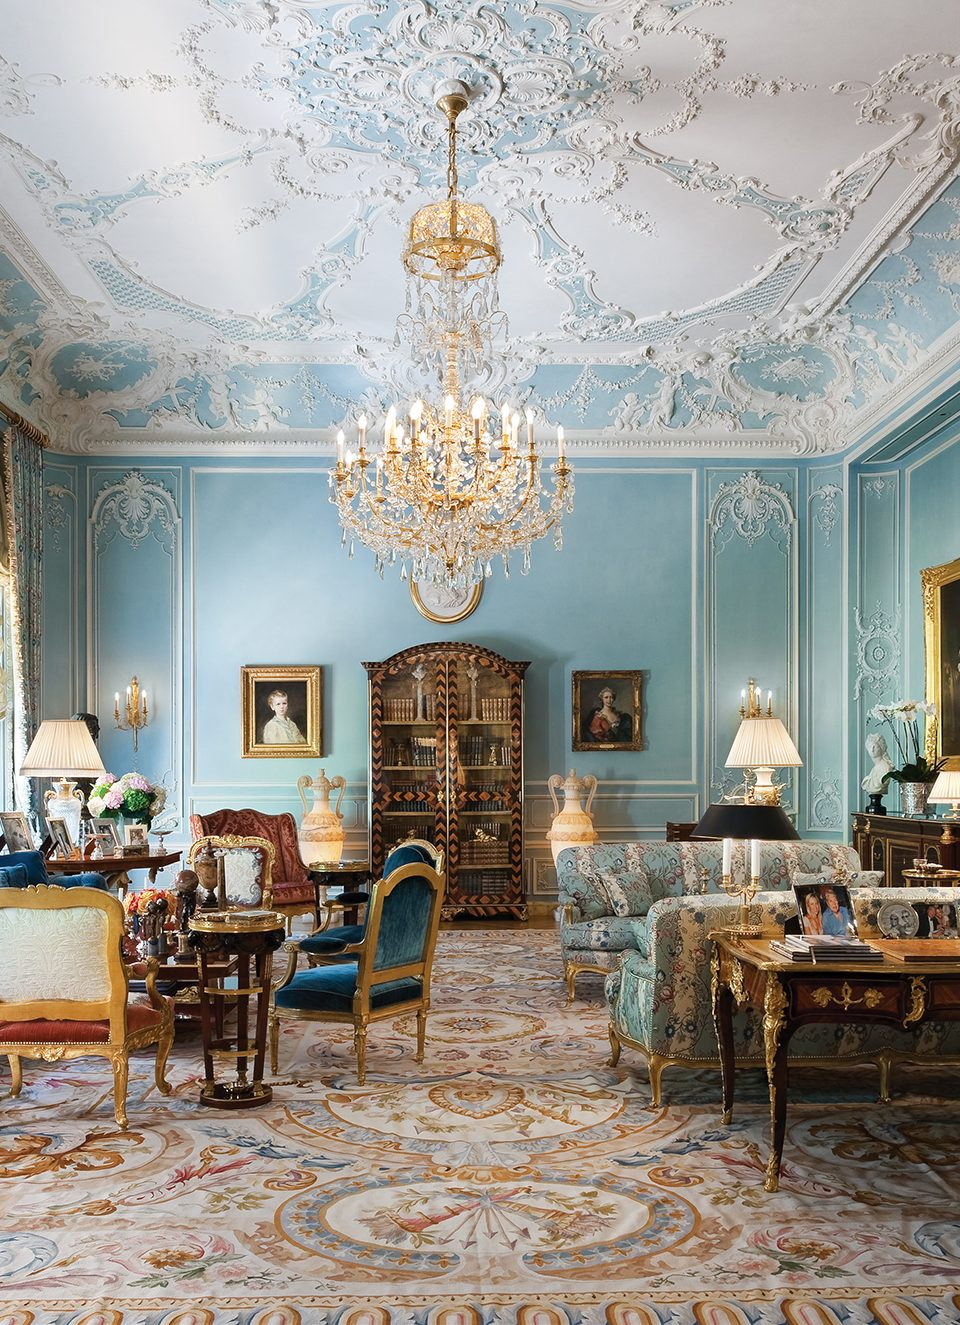 Take a Rarefied Tour of New York City's Most Unforgettable Homes